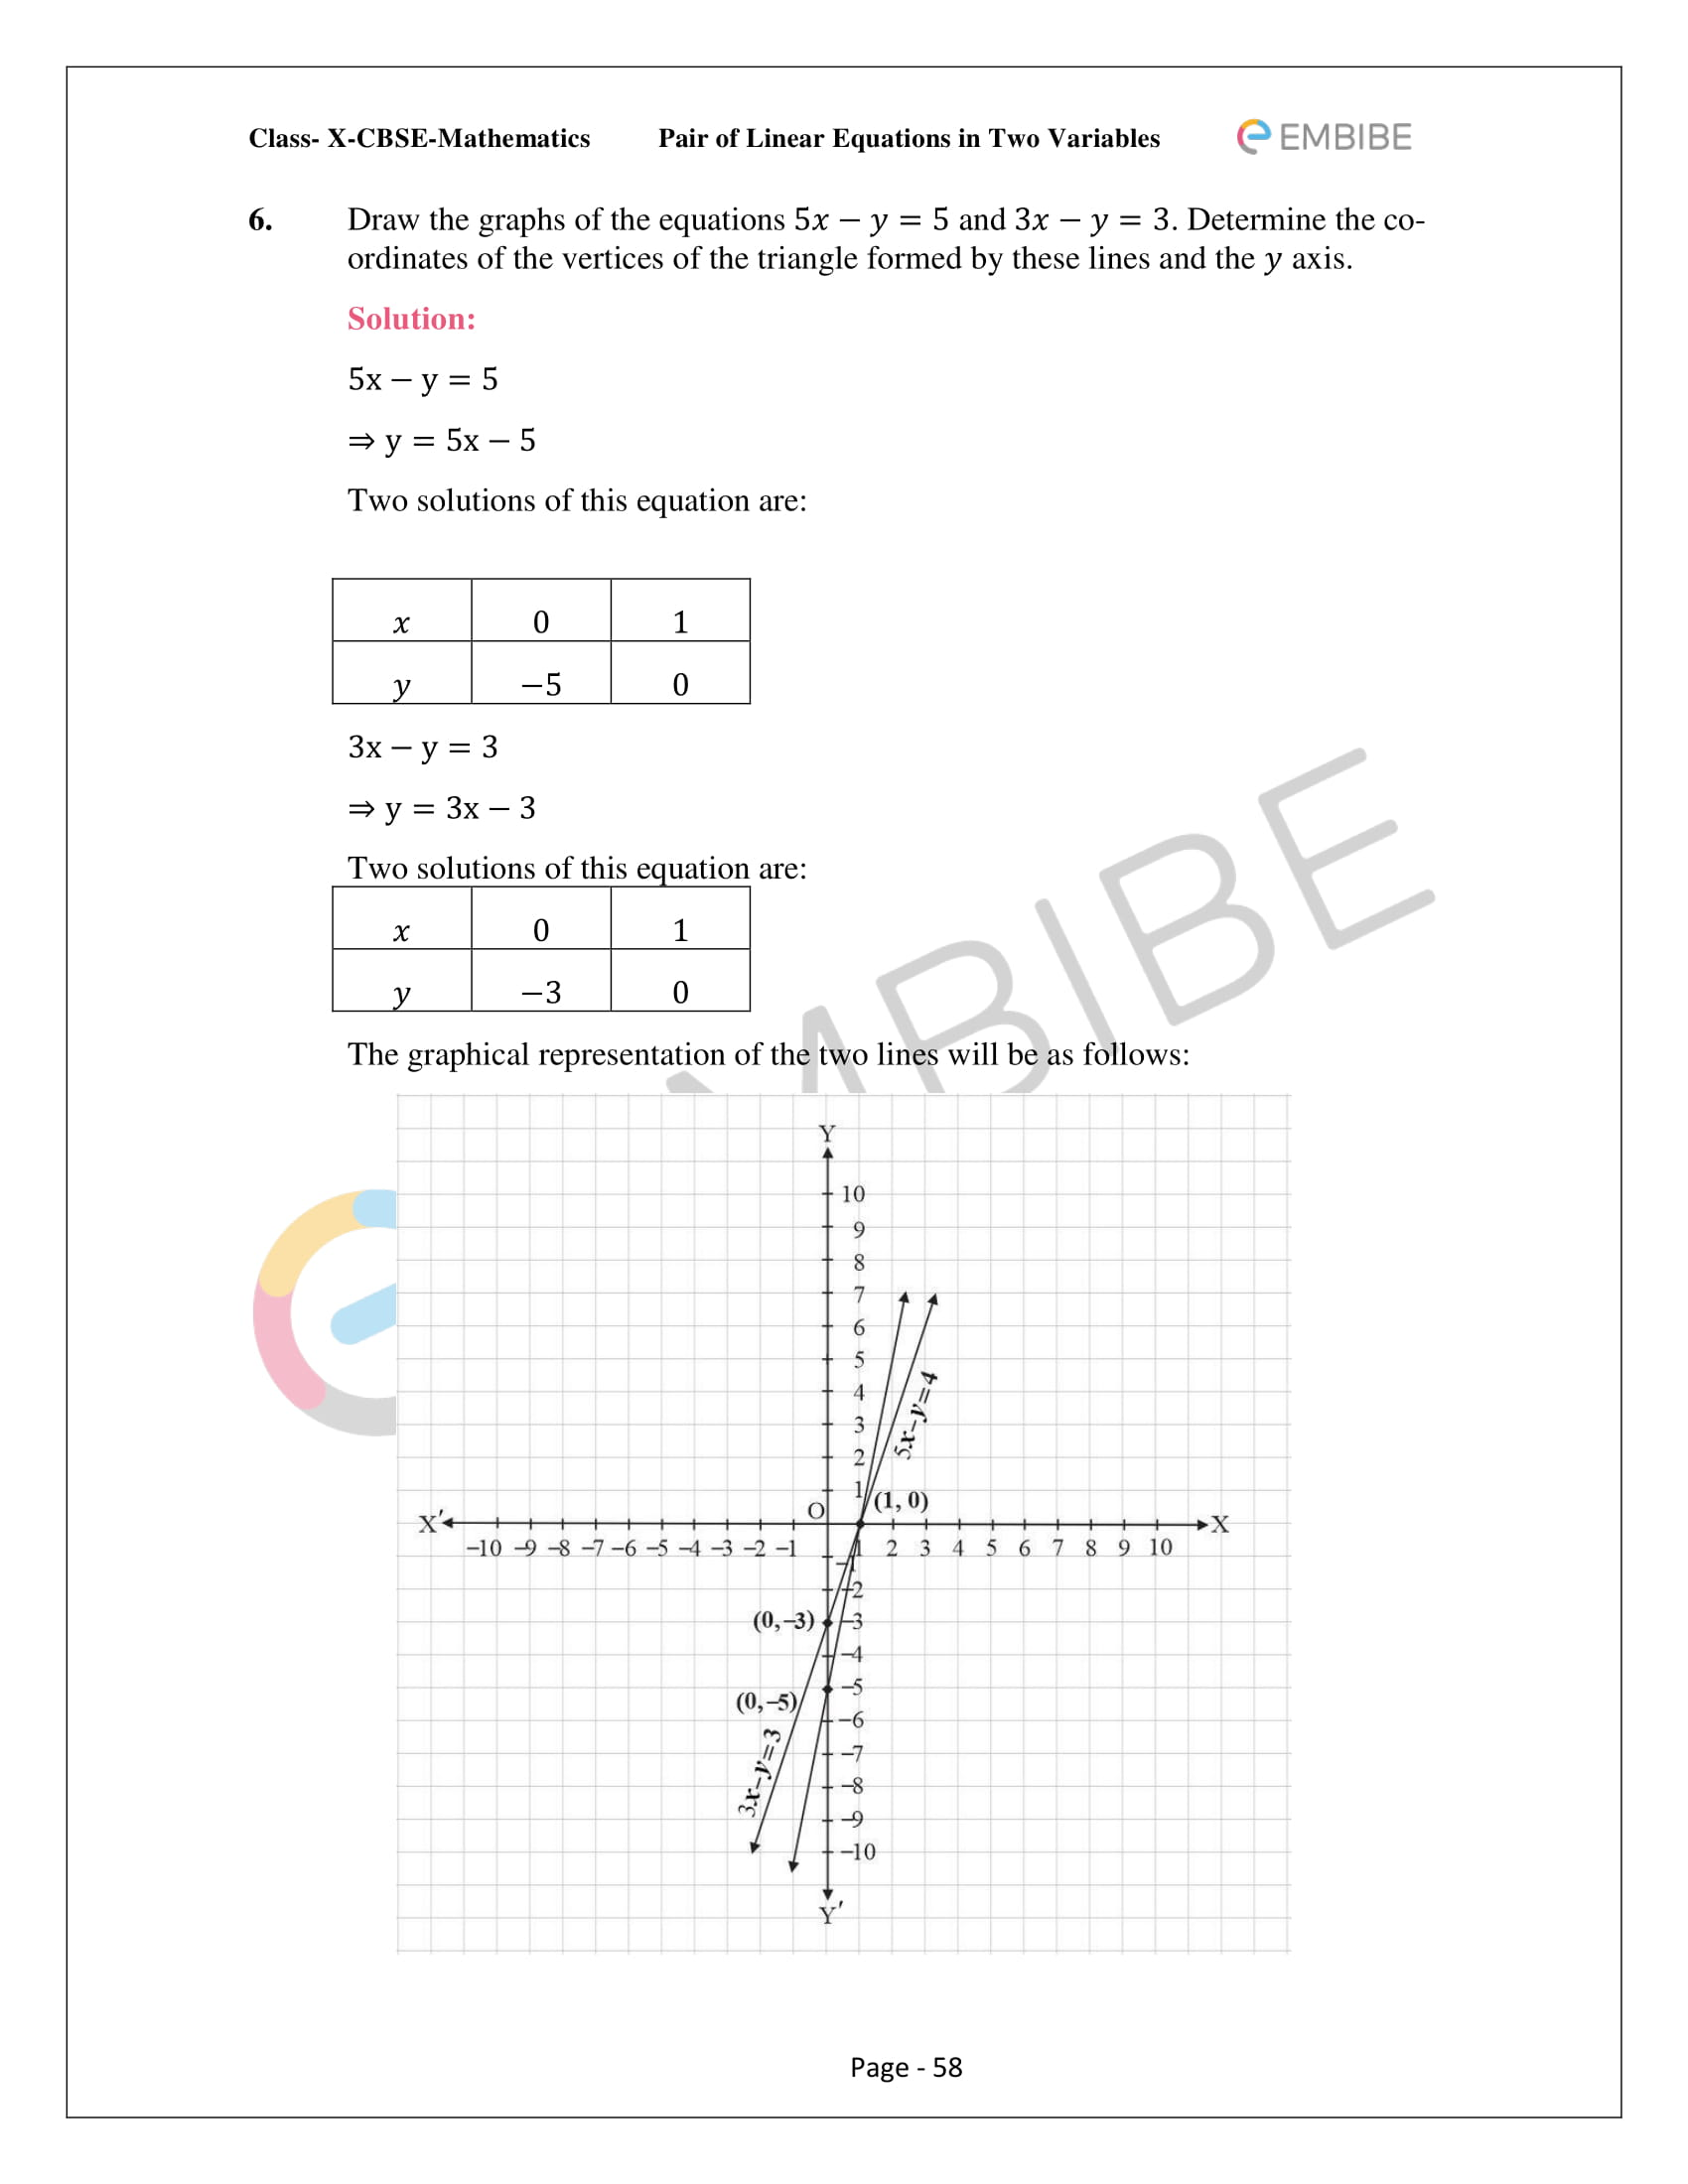 CBSE NCERT Solutions For Class 10 Maths Chapter 3 - Pair of Linear Equations In Two Variables - 58